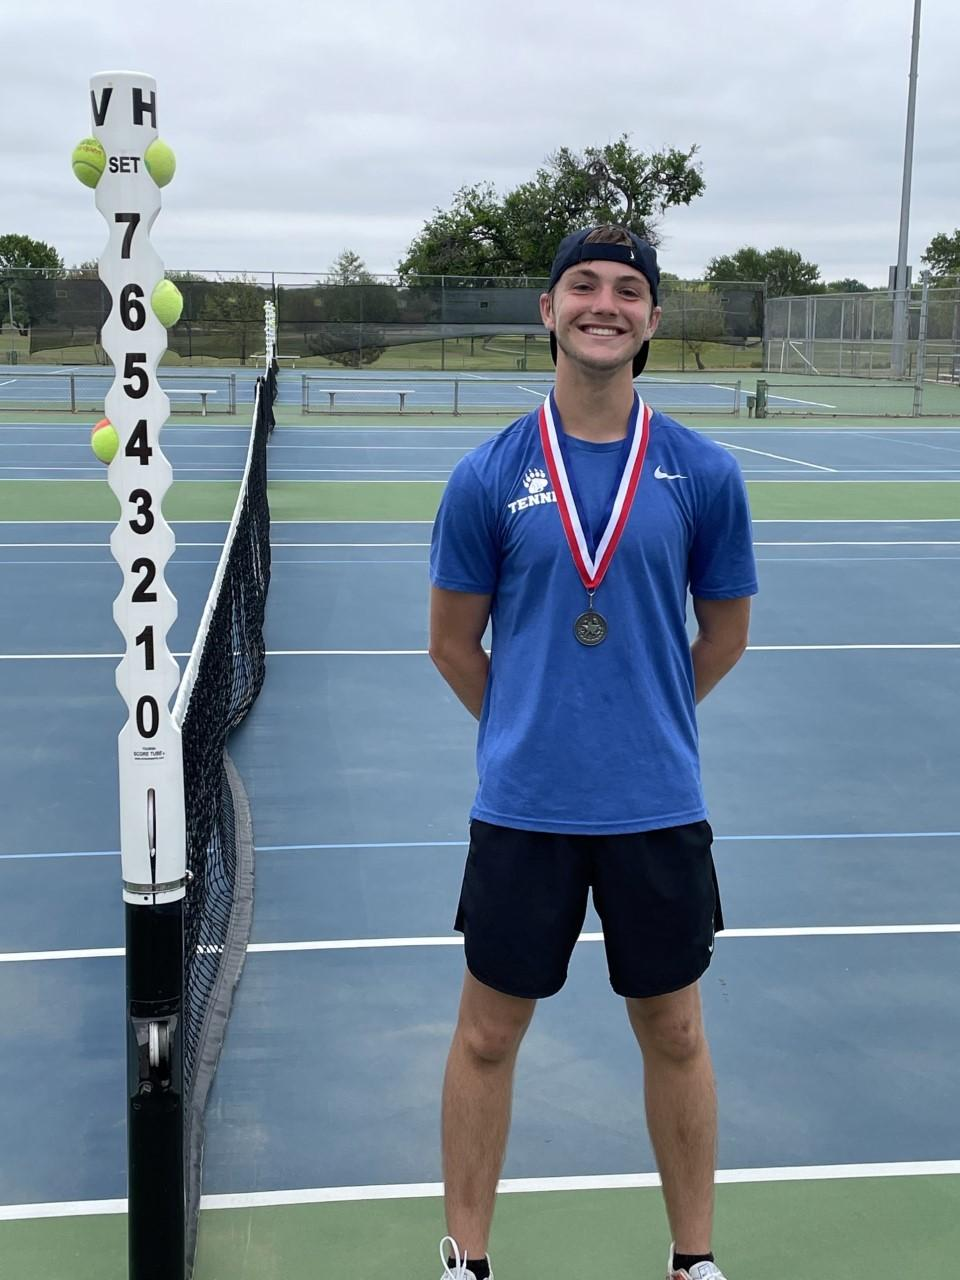 Cameron Vieck won second place in boys' singles at the district tournament in Wichita Falls, and he advanced to the regional tournament in Lubbock on April 28.